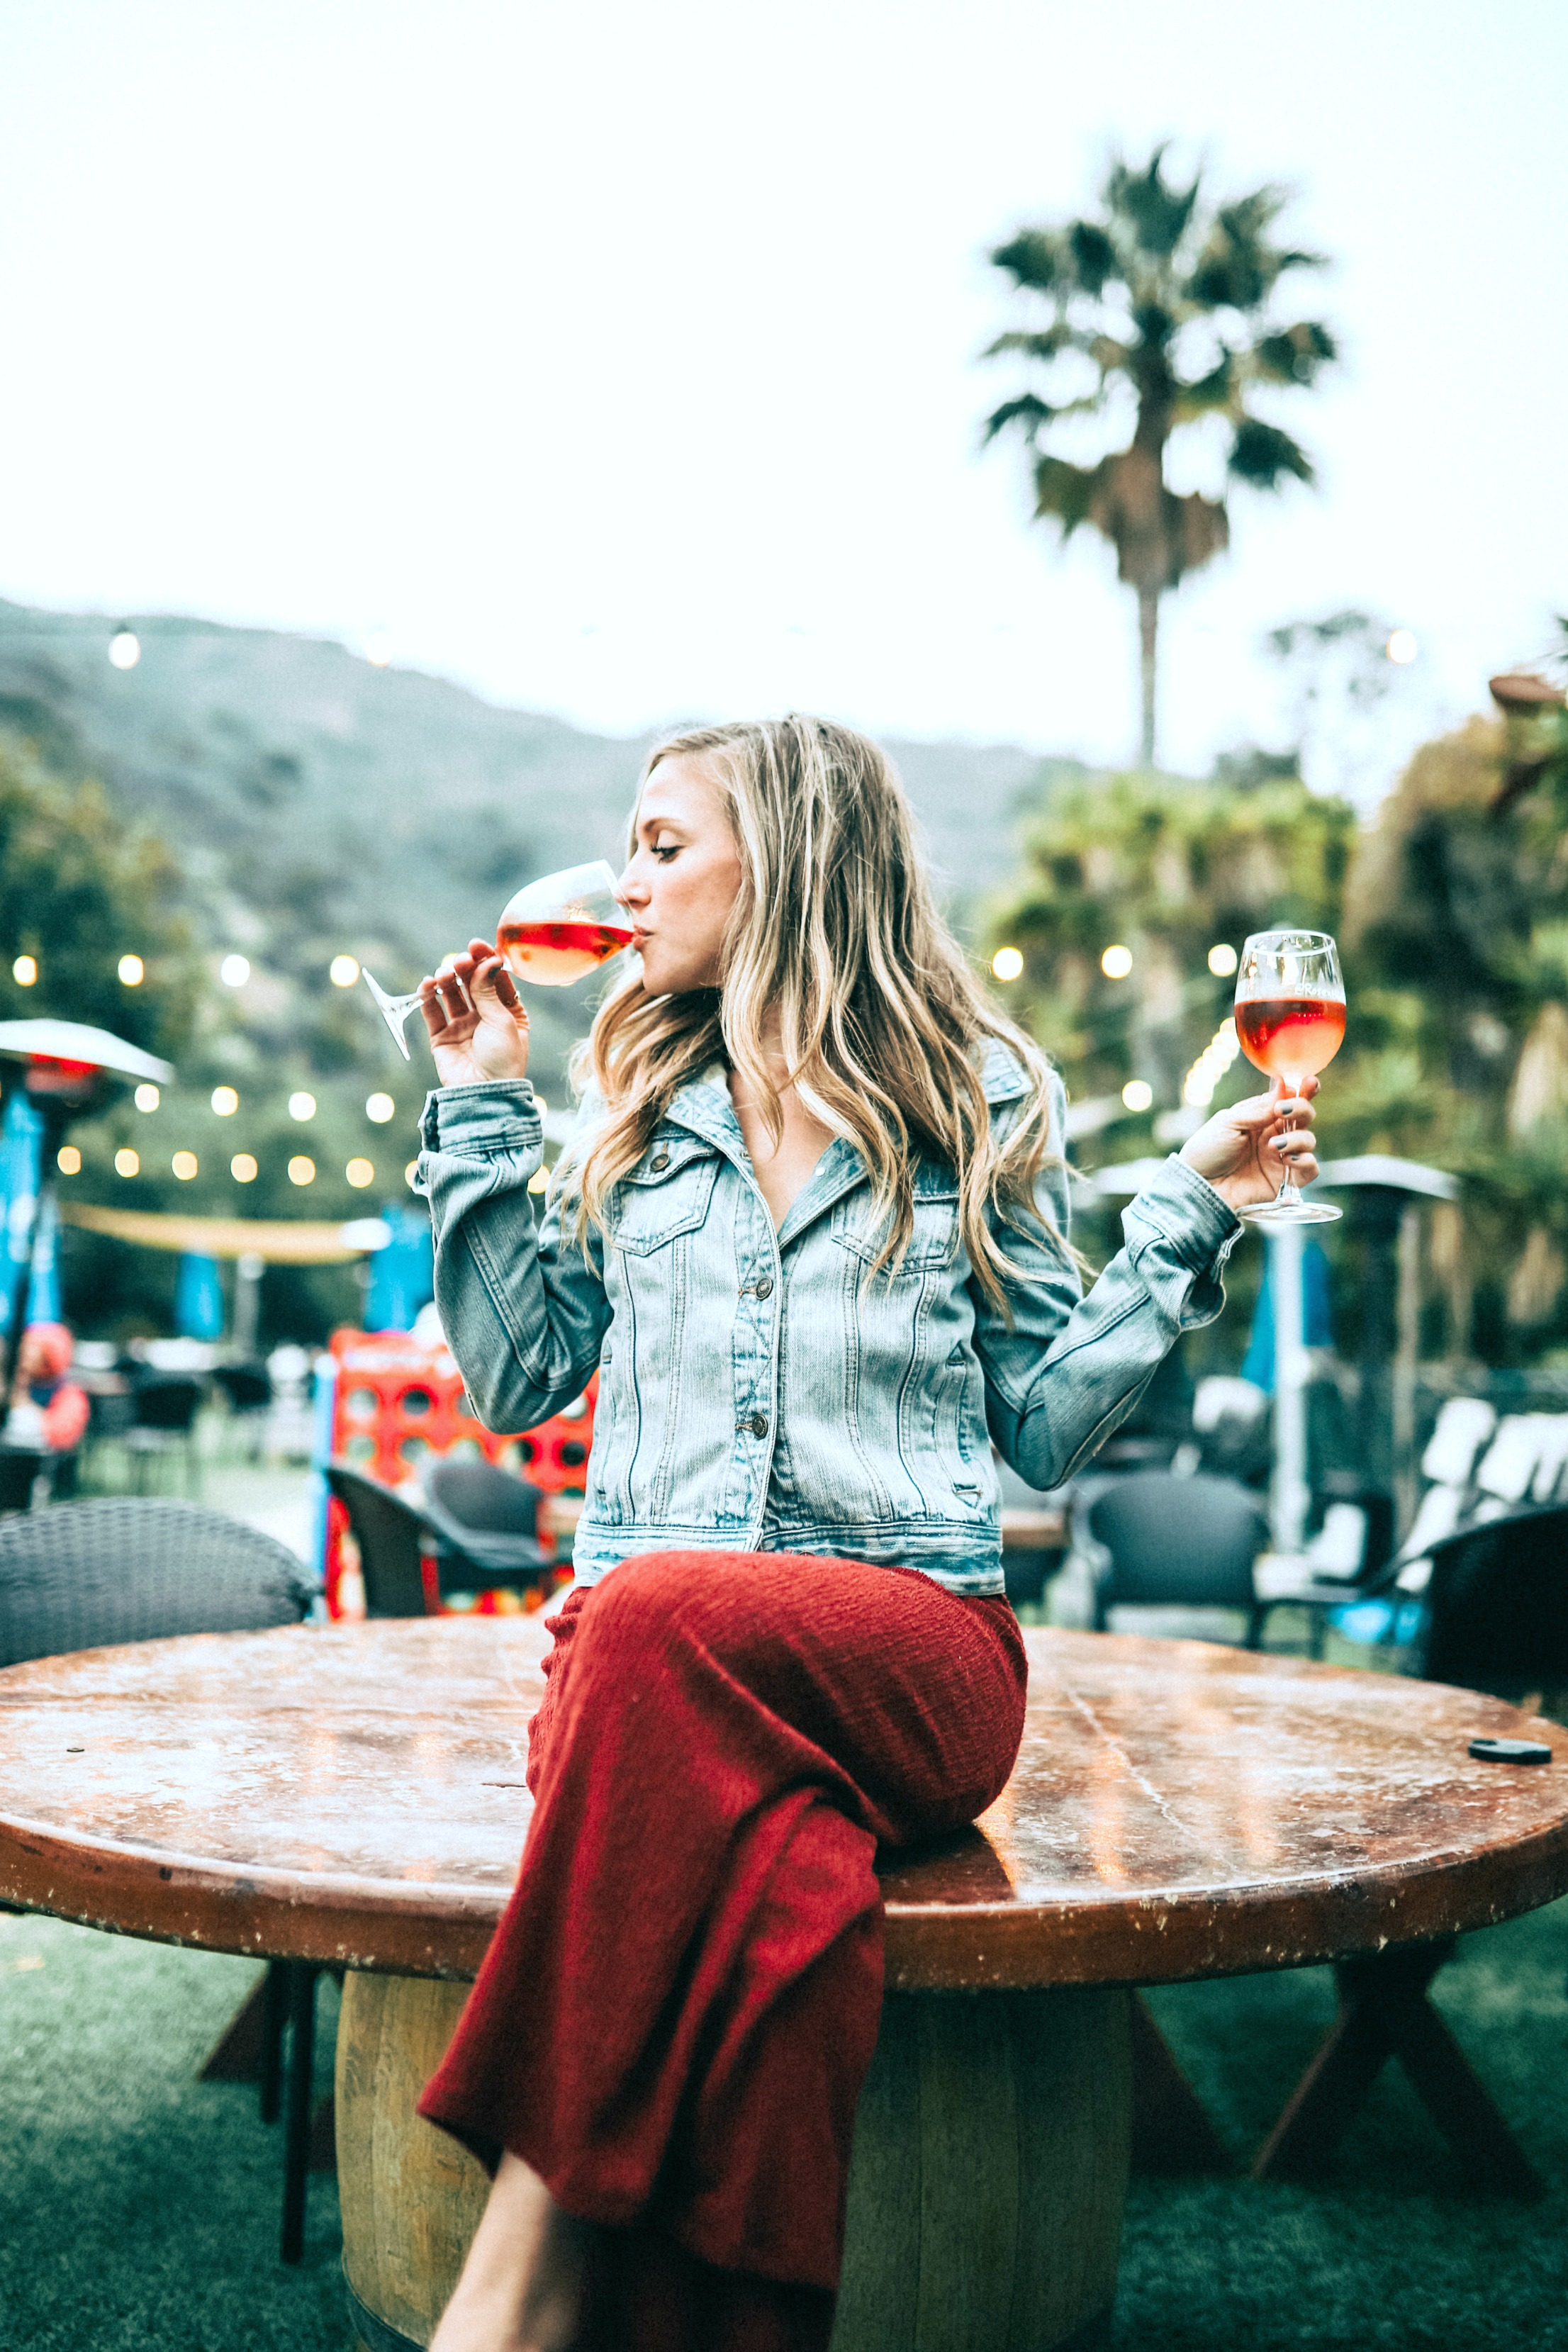 A woman sitting on a table drinking a glass of wine while she holds another glass of wine.